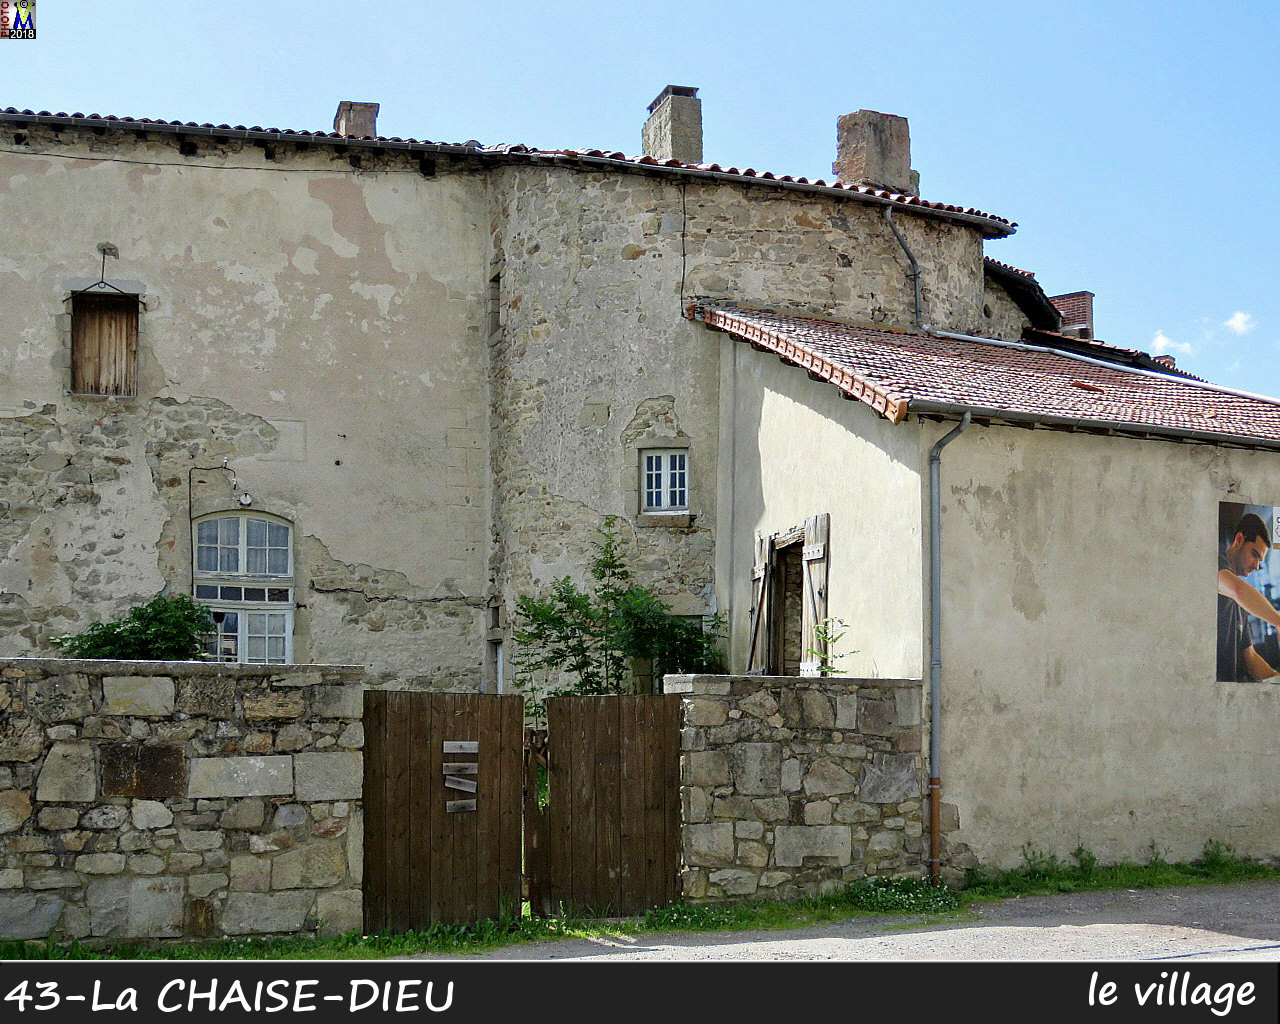 43CHAISE-DIEU_village_158.jpg